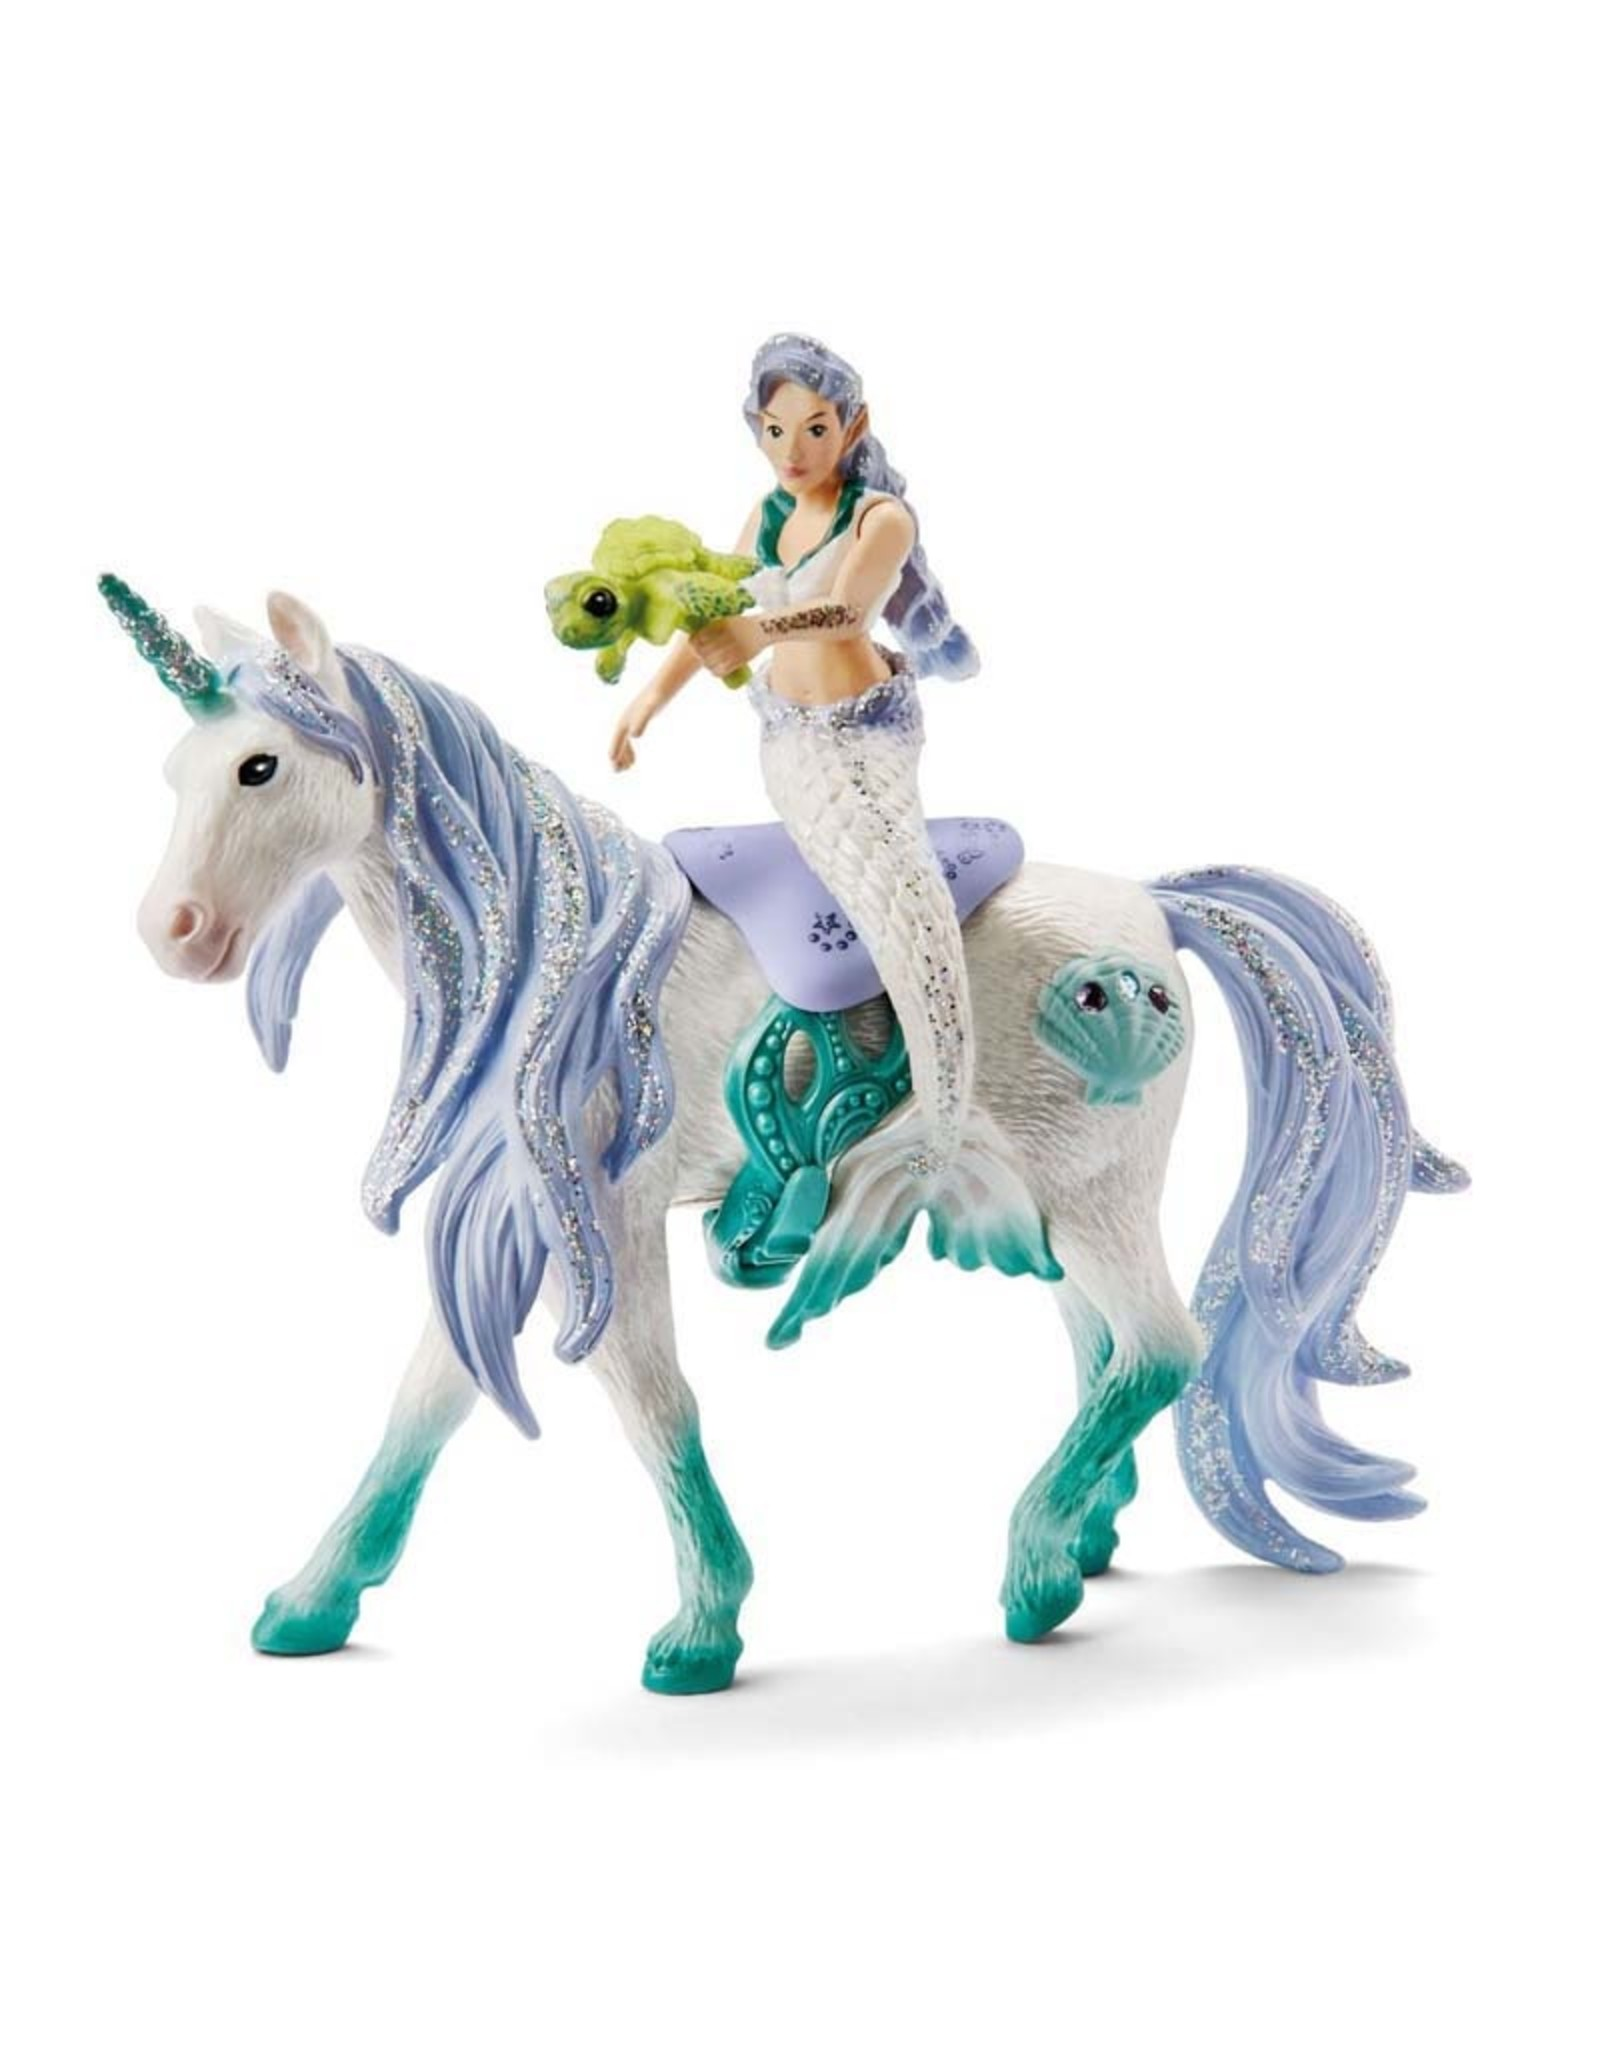 Schleich Mermaid Riding on Sea Unicorn